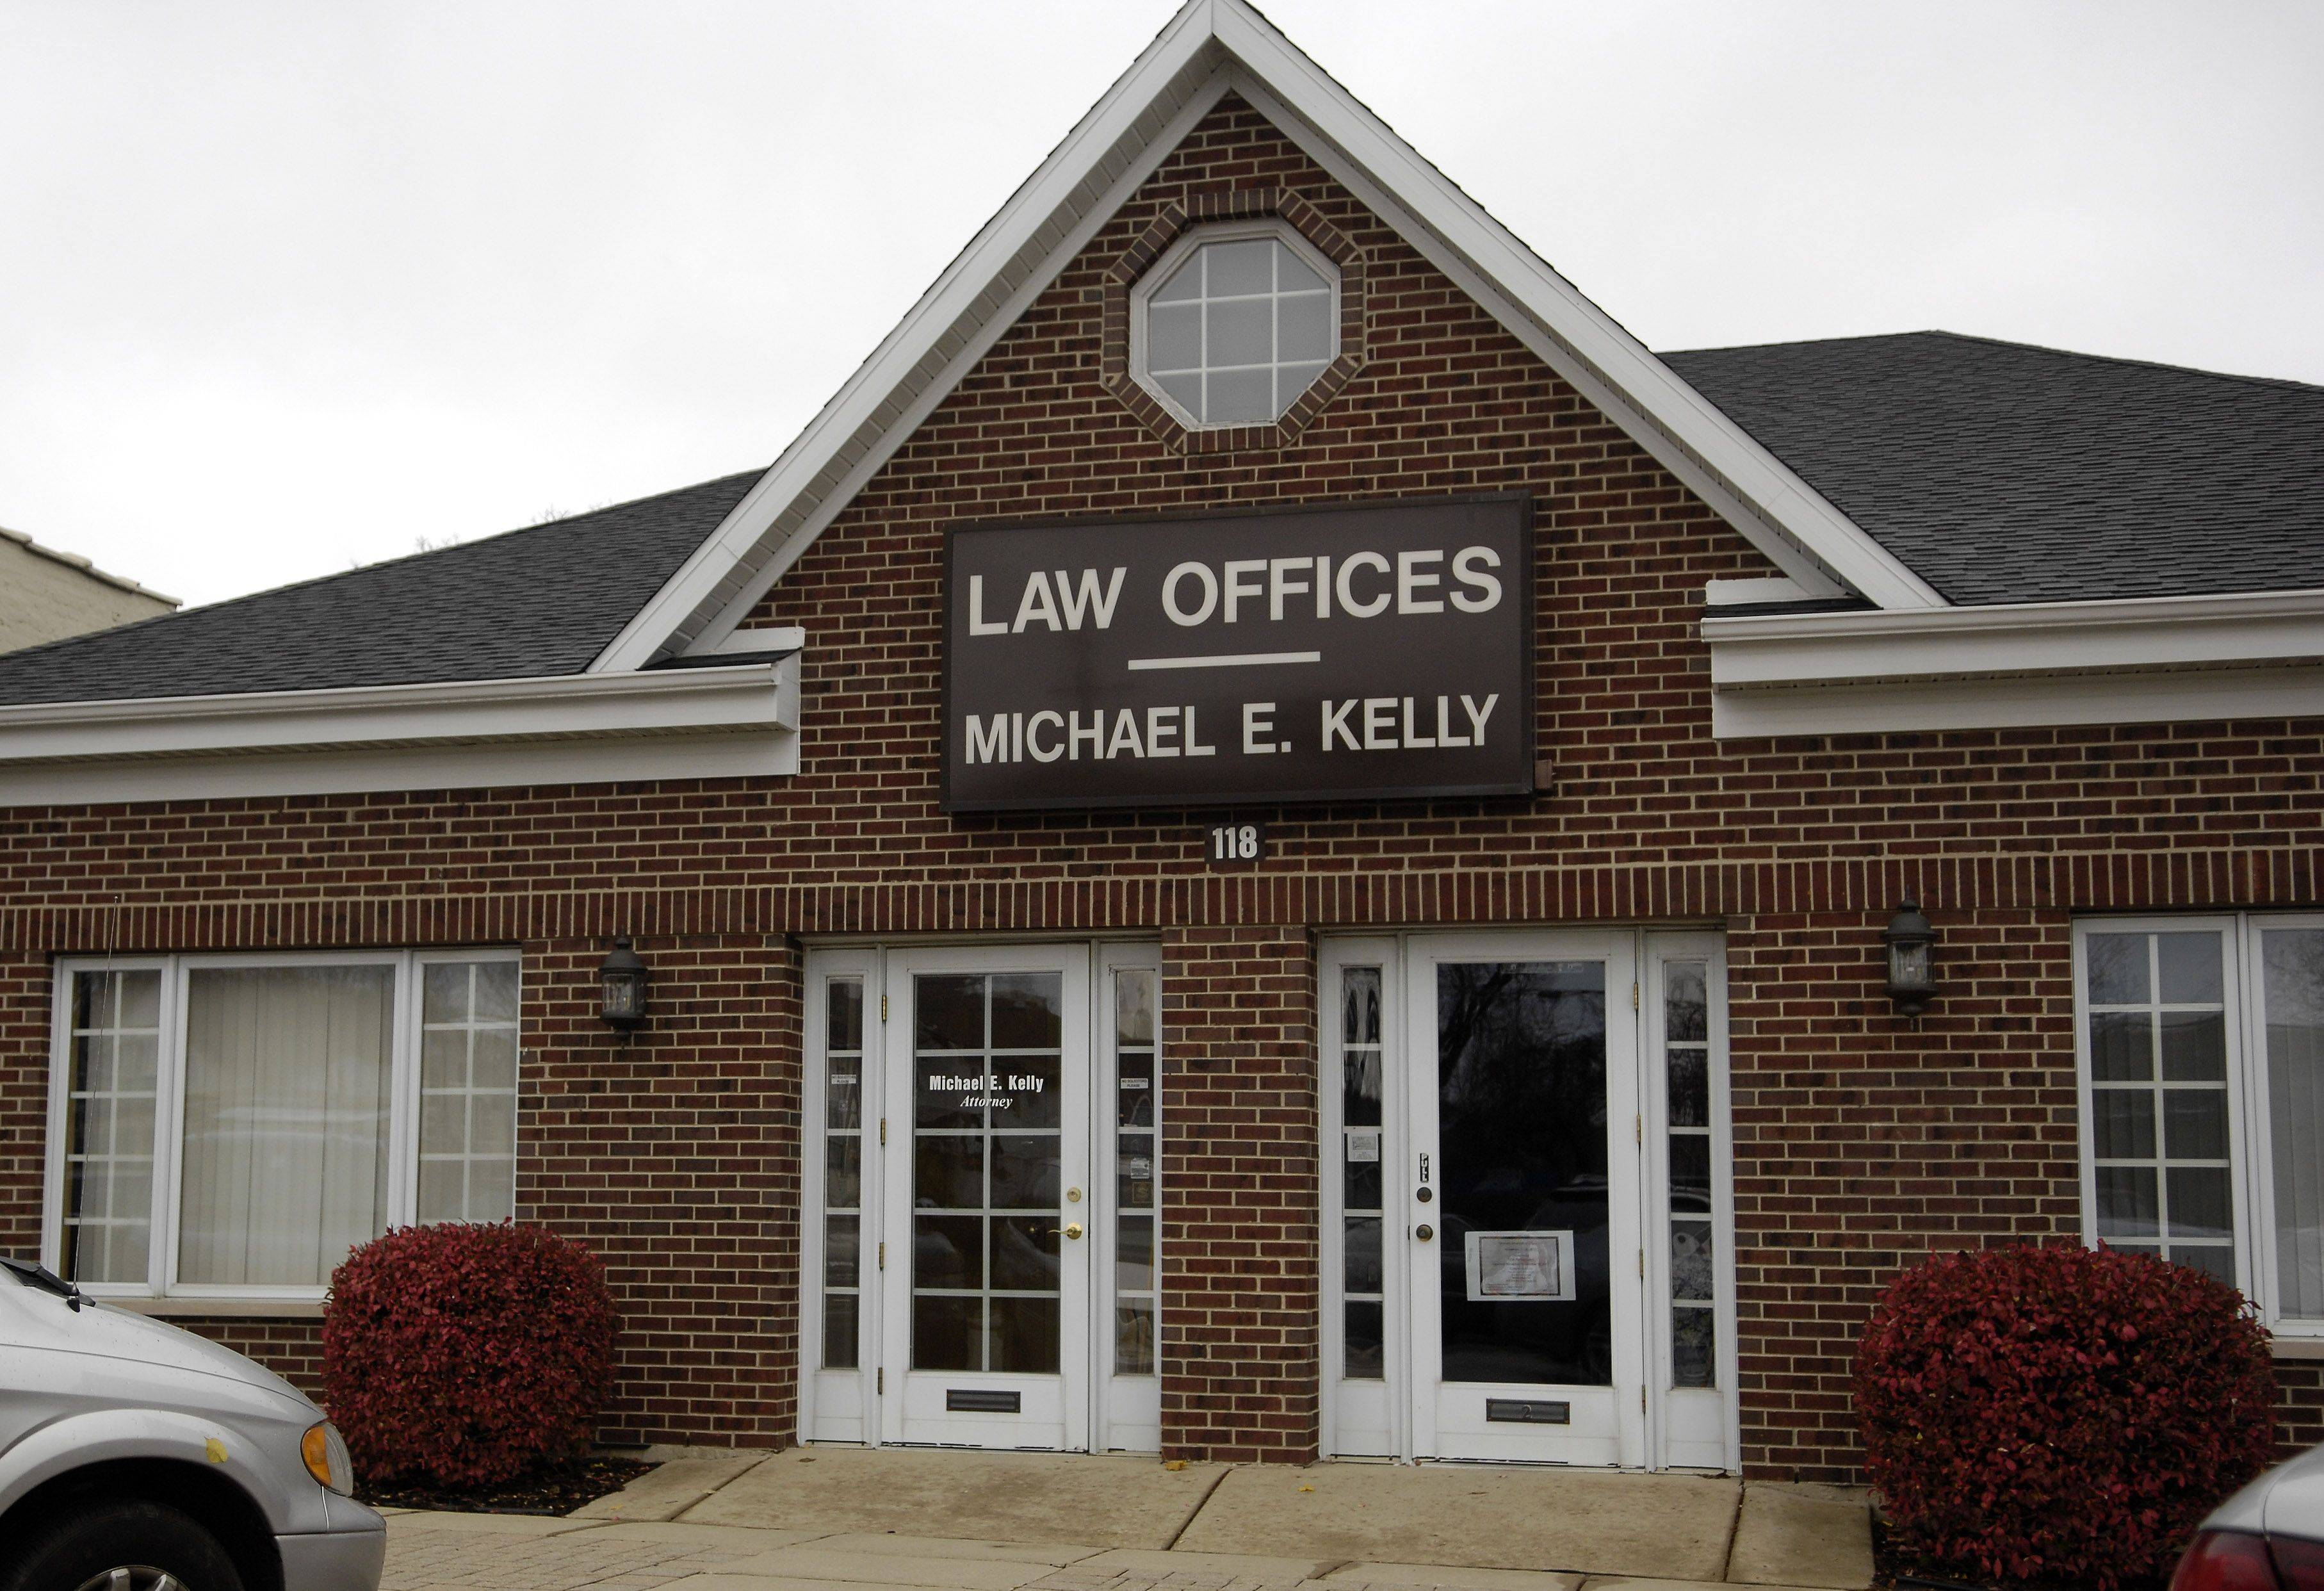 Bartlett Mayor Michael Kelly owns the building that houses his law office.